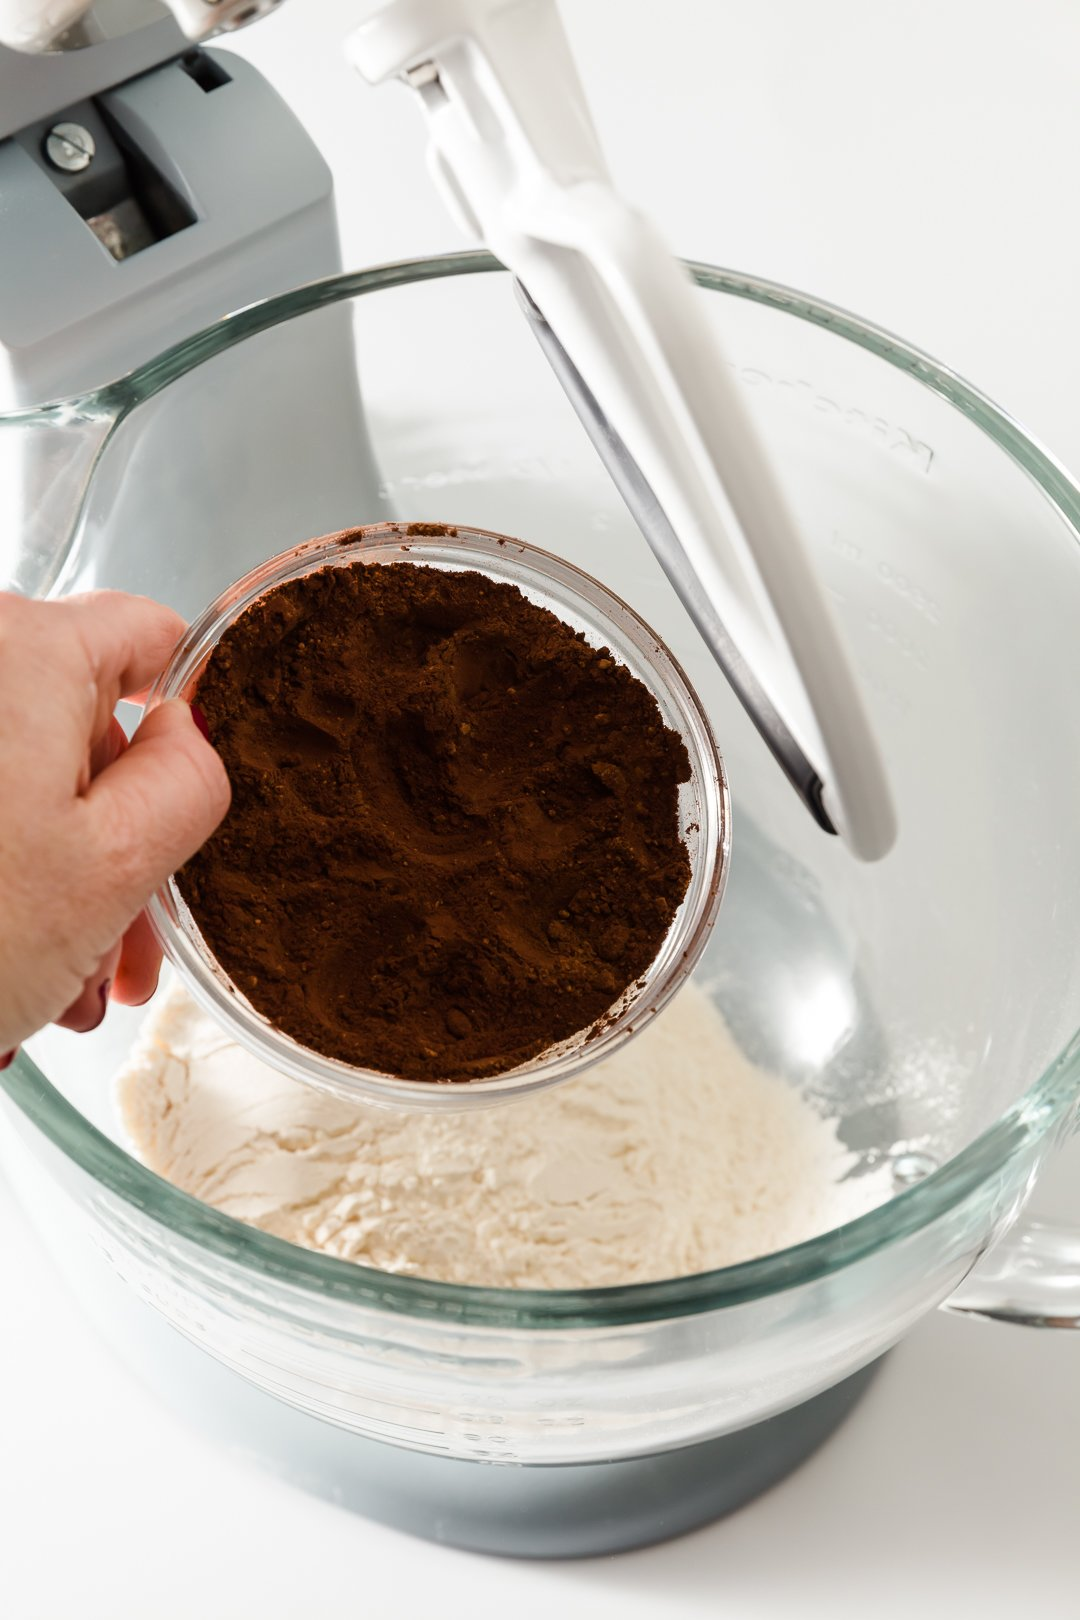 Dark cocoa powder being adding to a mixing bowl